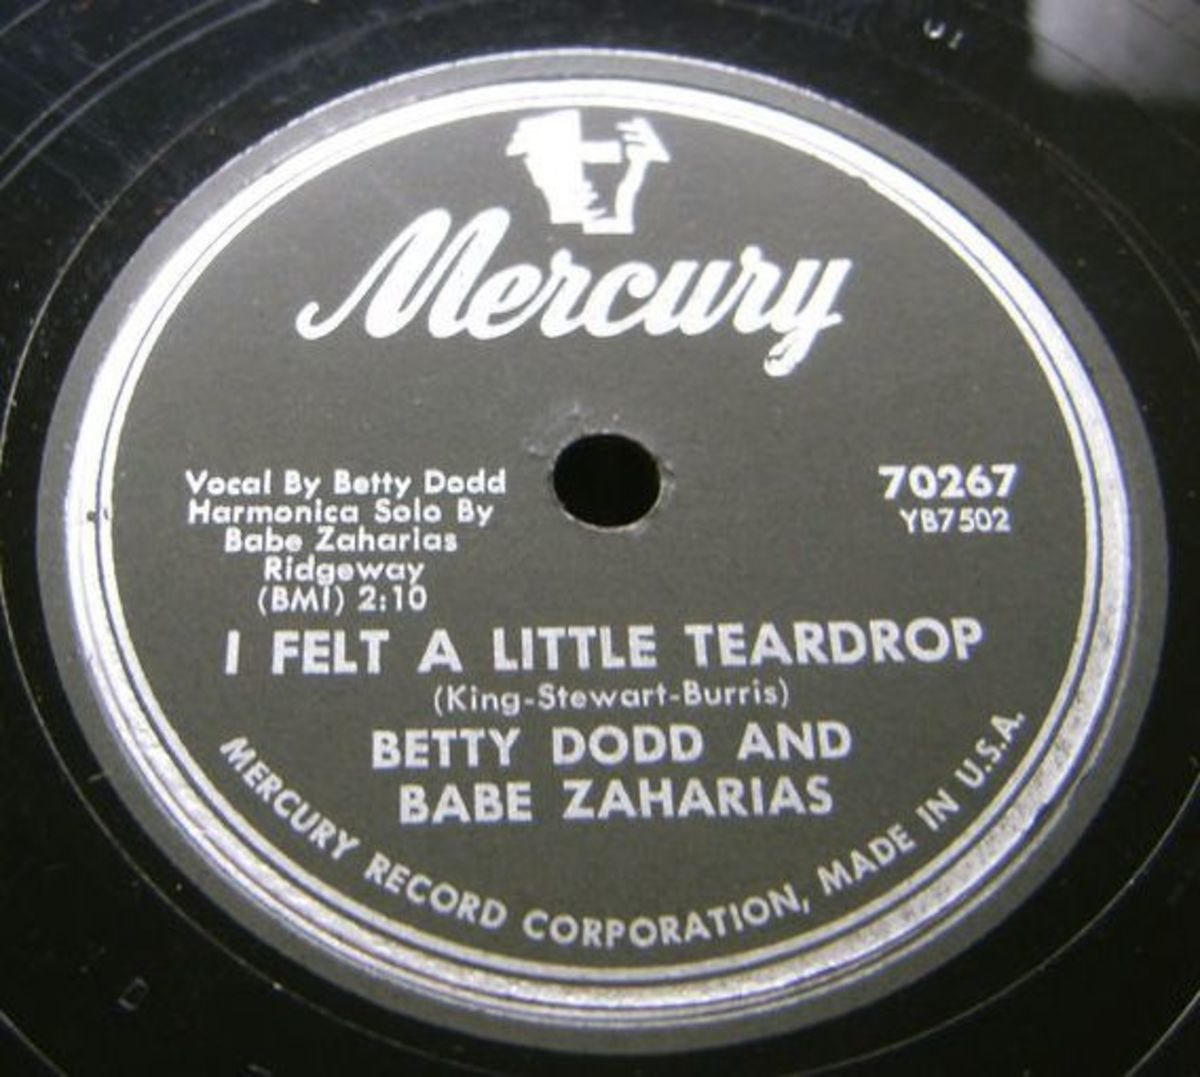 Babe Didrikson Mercury record label